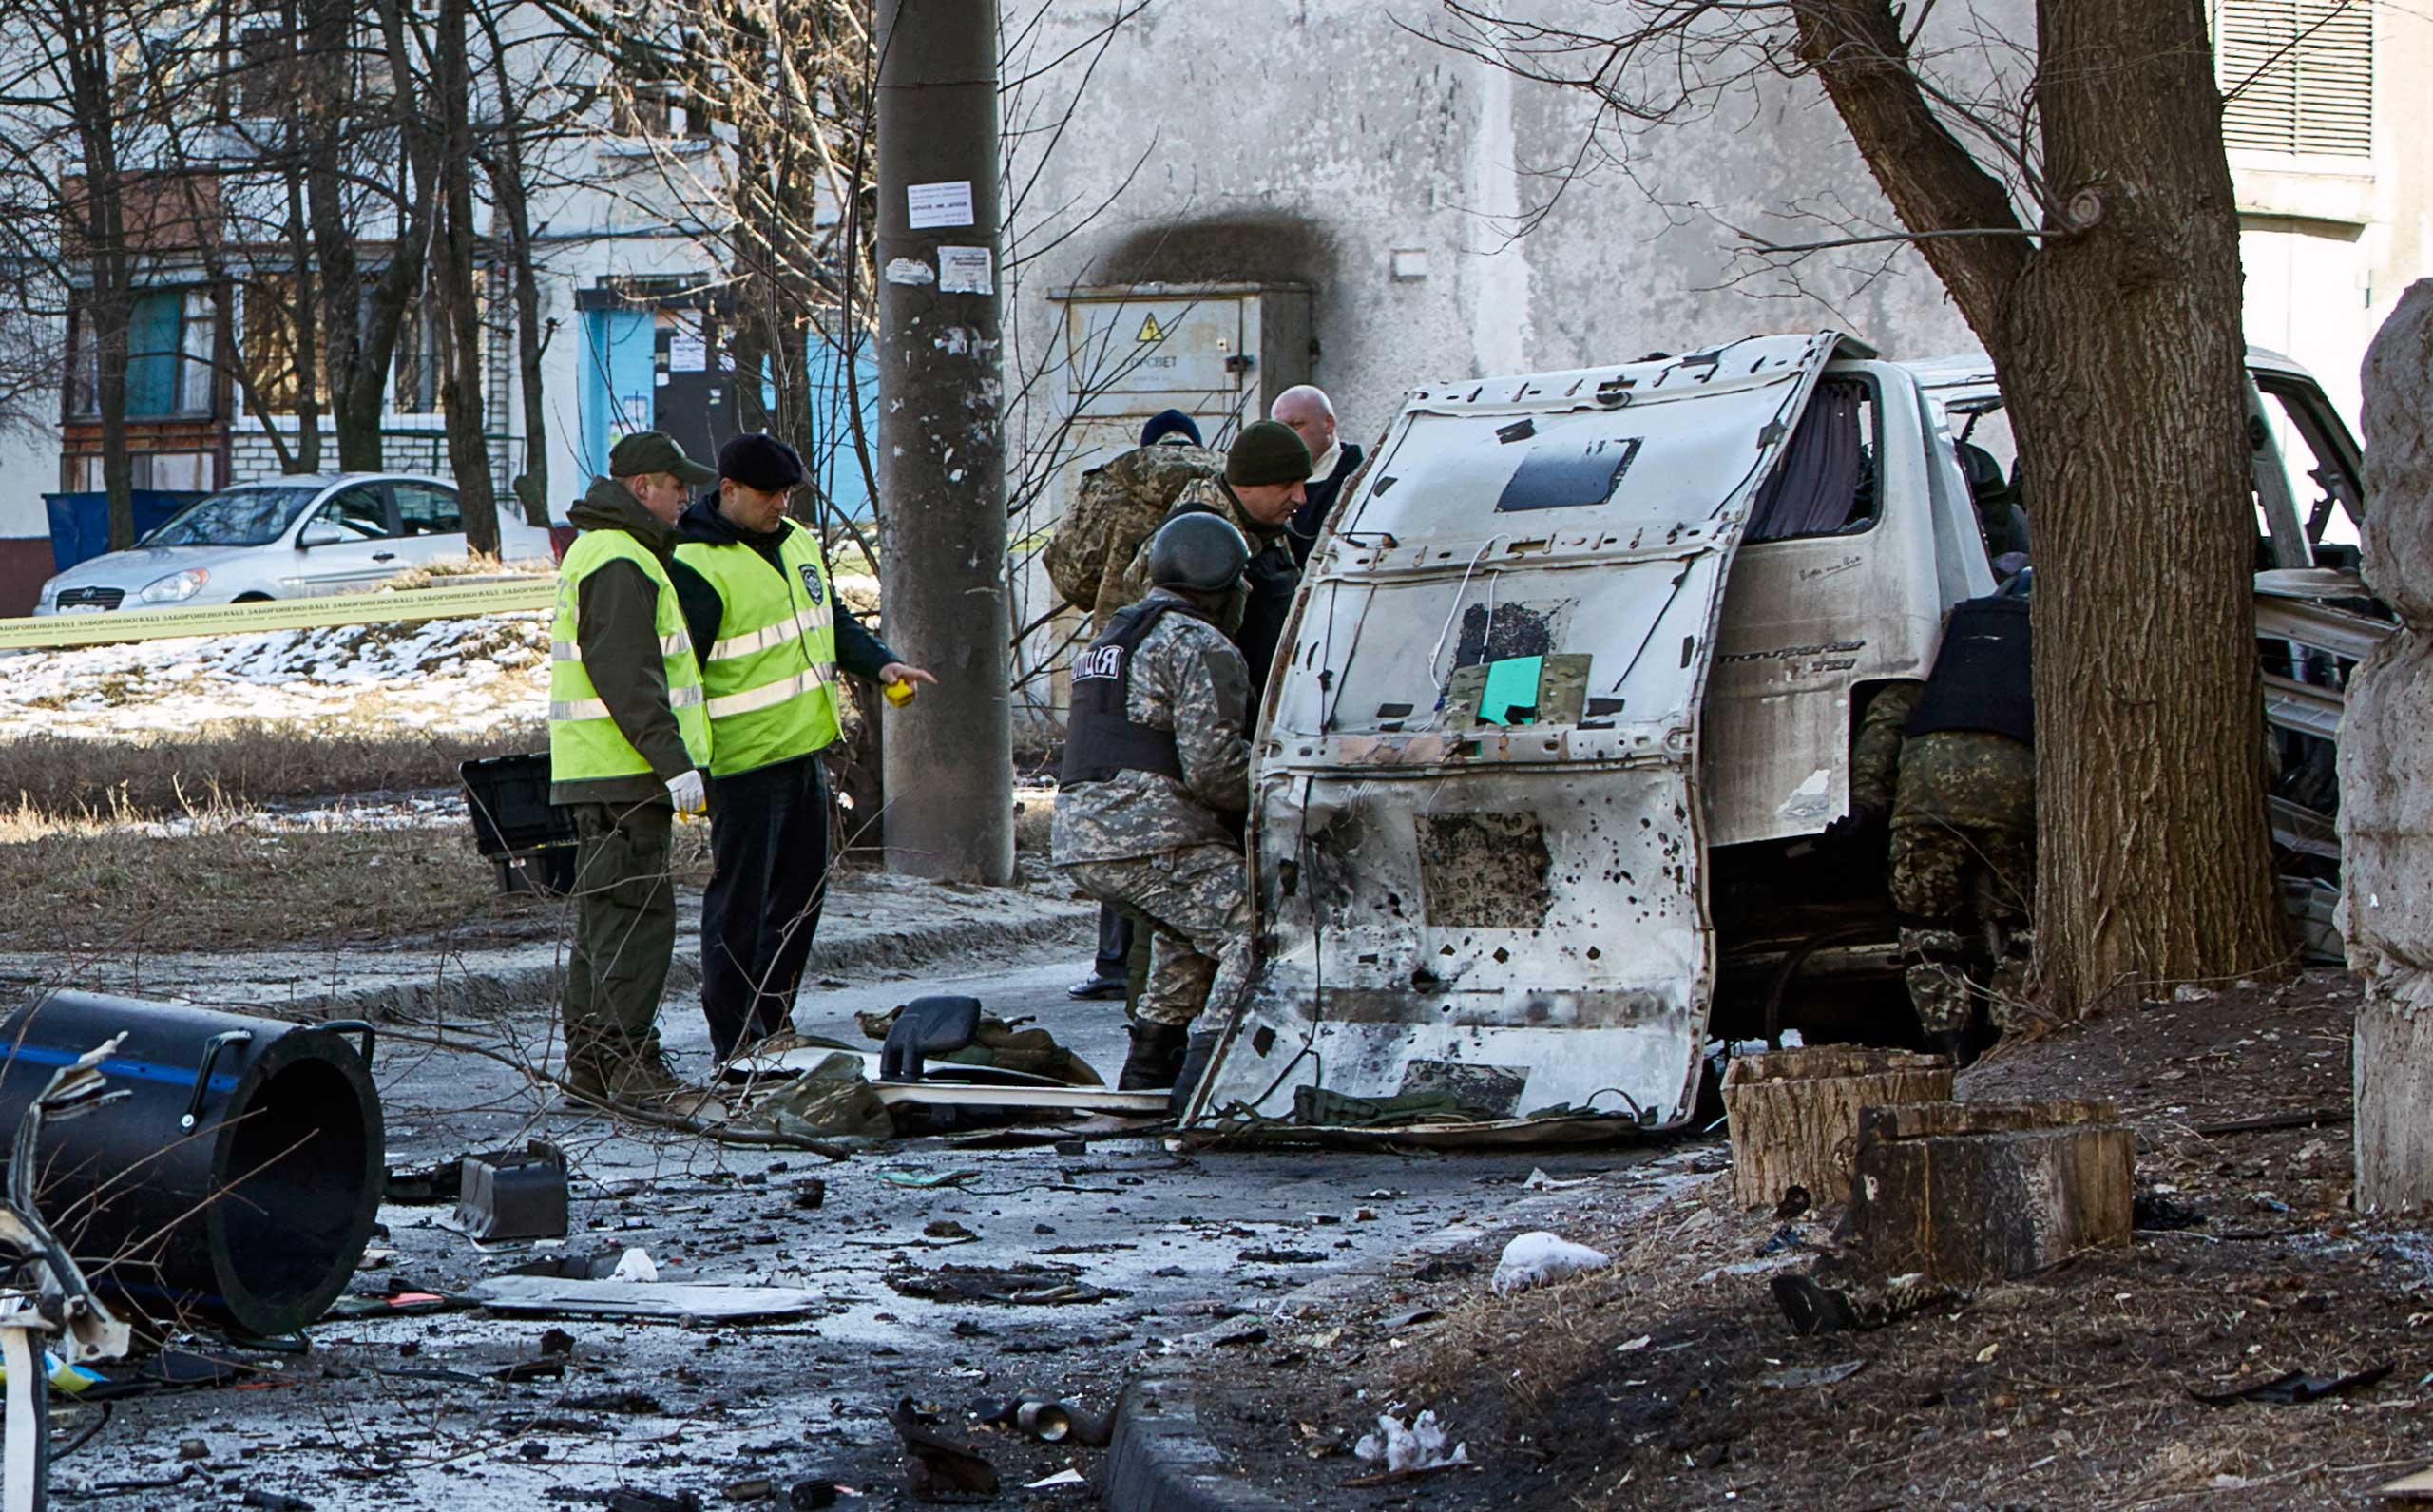 Ukrainian police and forensic experts examine the wreckage of a mini-bus after explosion, in Kharkov, March 6, 2015.